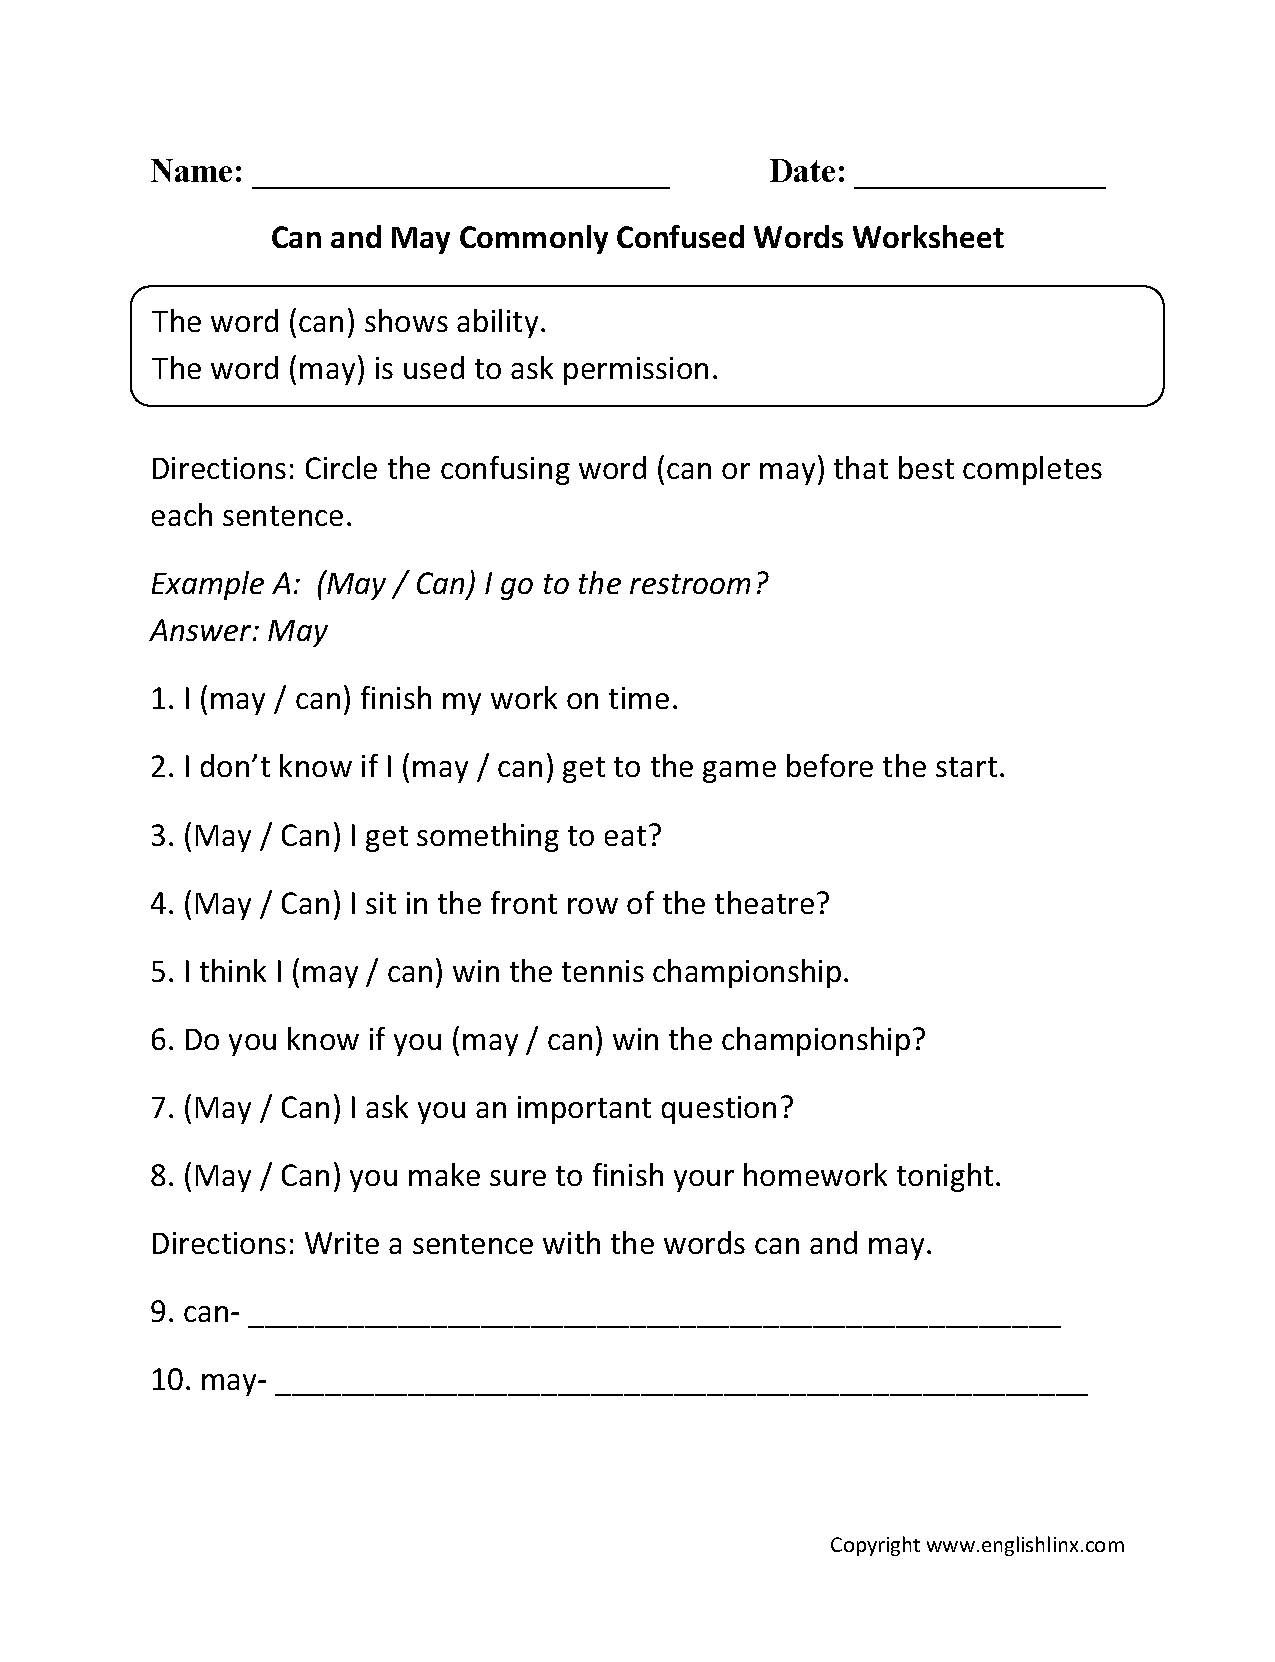 Can and May Commonly Confused Words Worksheets